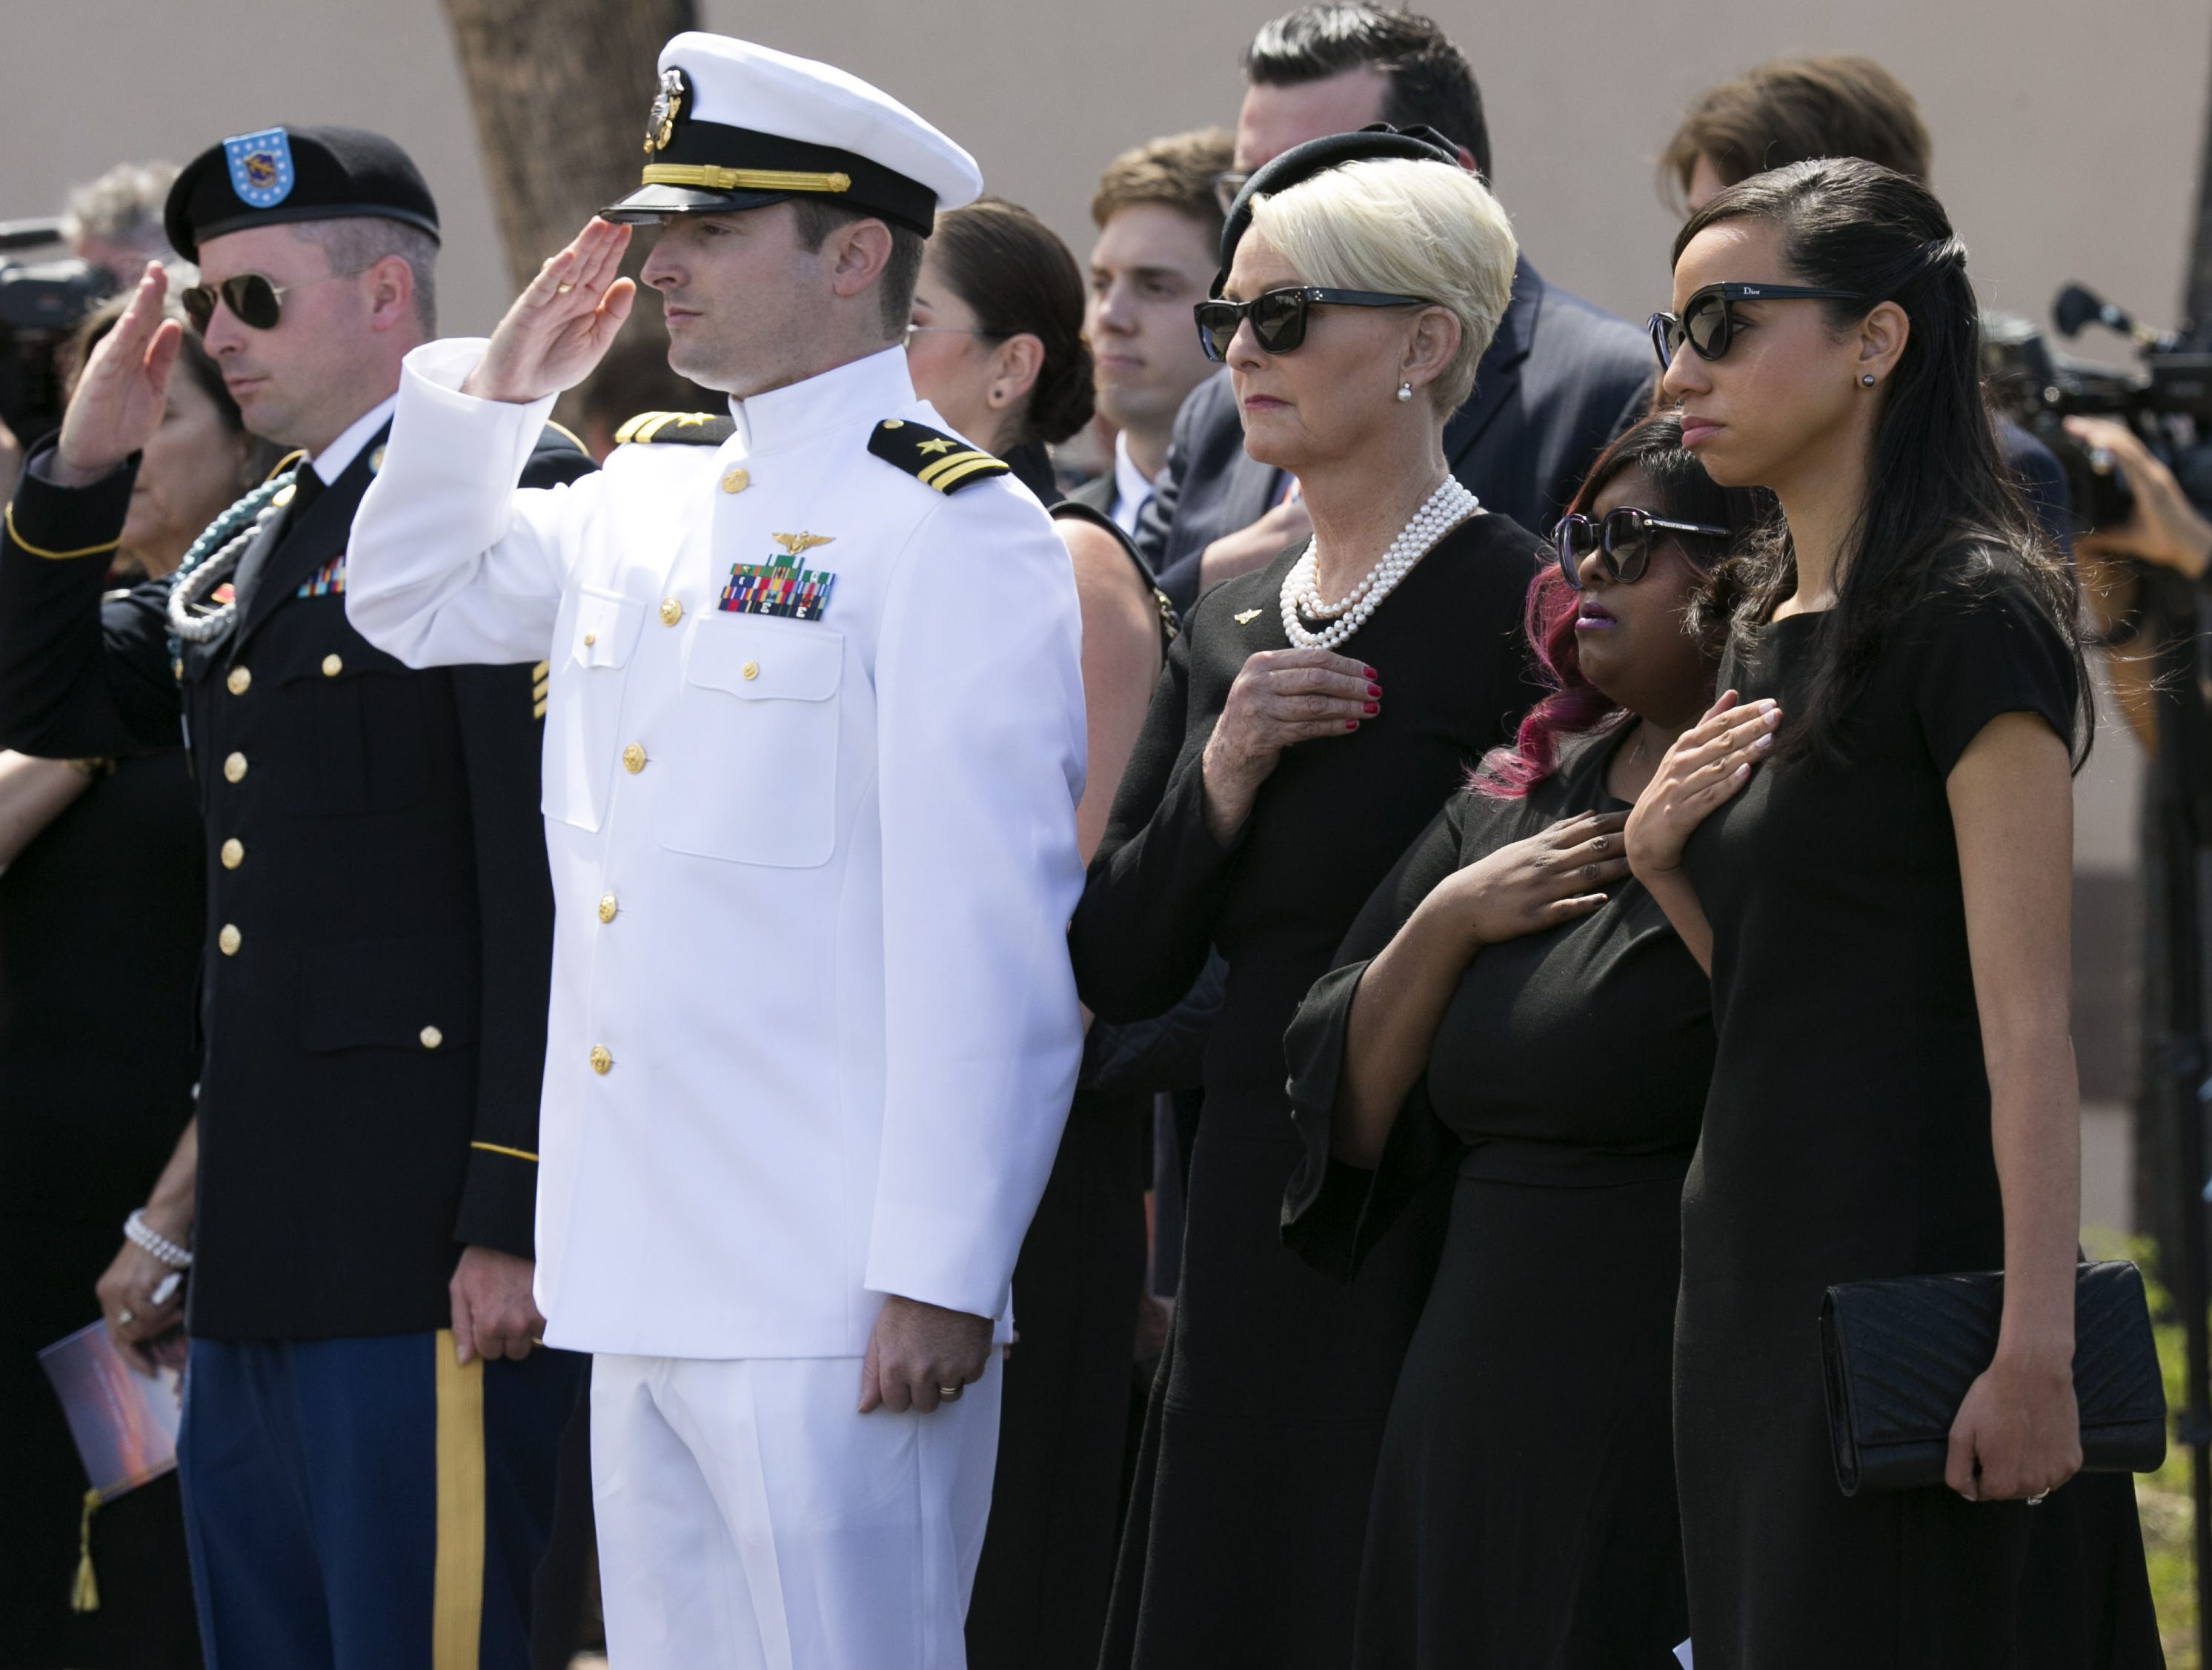 Senator John McCain's family (from left) Jimmy McCain, Jack McCain, Cindy McCain, Bridget McCain and Renee McCain, salute and place their hands on their hearts as the casket of Sen. McCain is placed in the hearse following a memorial service for Senator McCain at North Phoenix Baptist Church in Phoenix, Aug. 30, 2018.